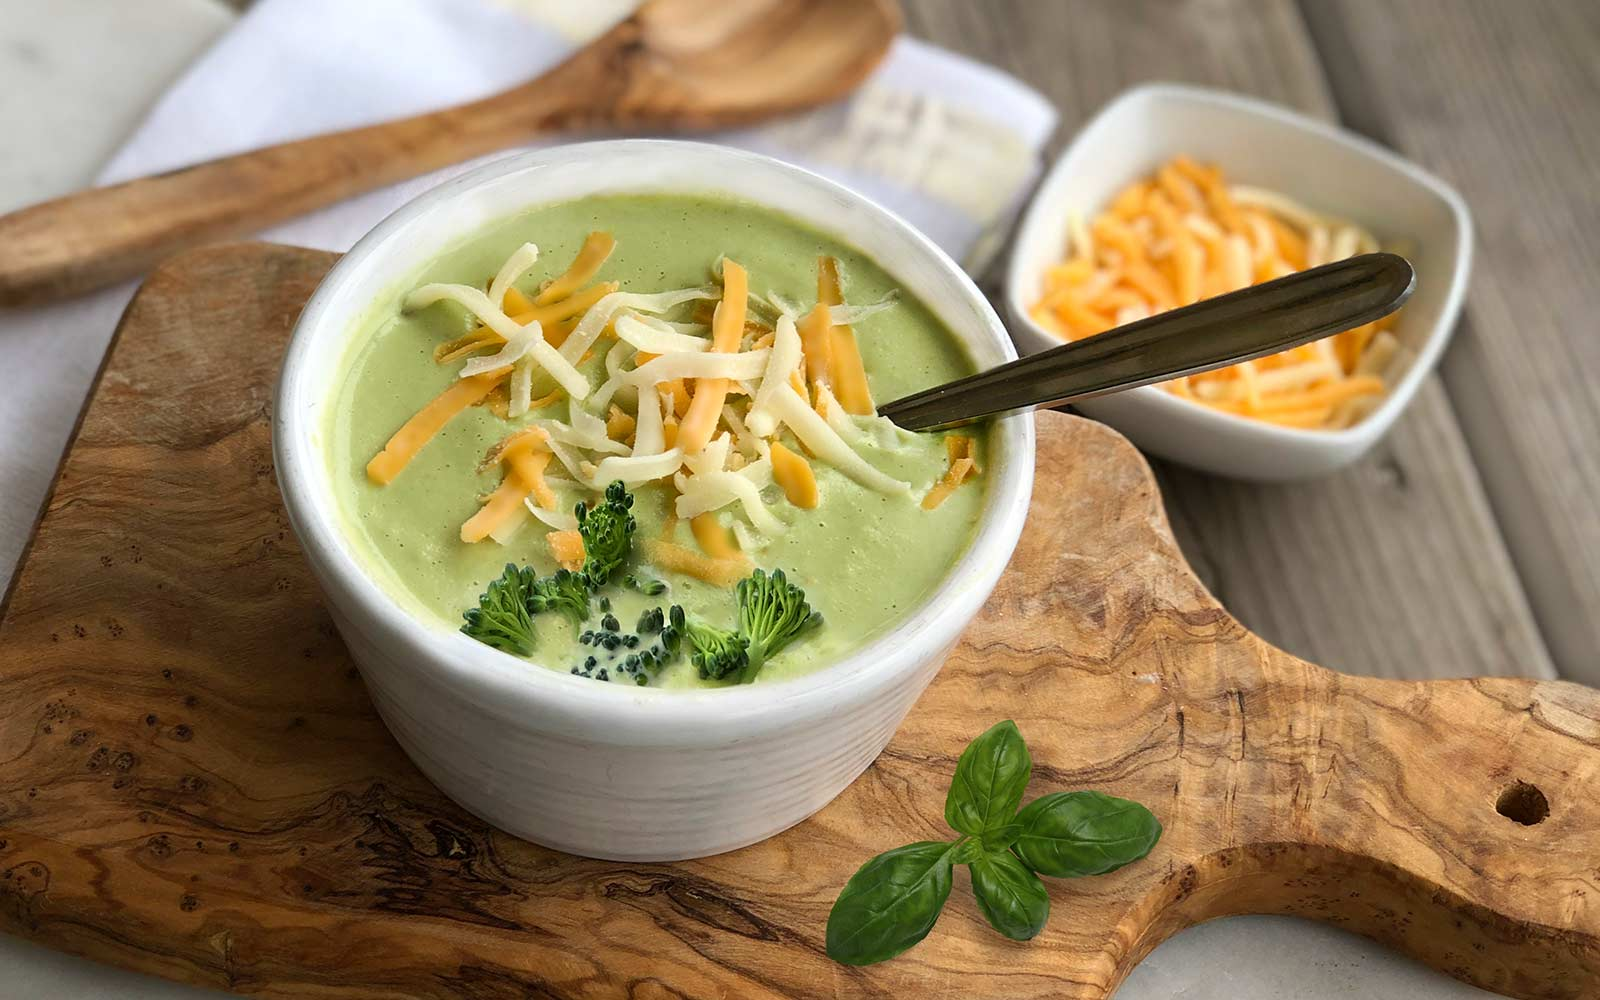 Hearty & Healthy Creamy Protein Broccoli Soup